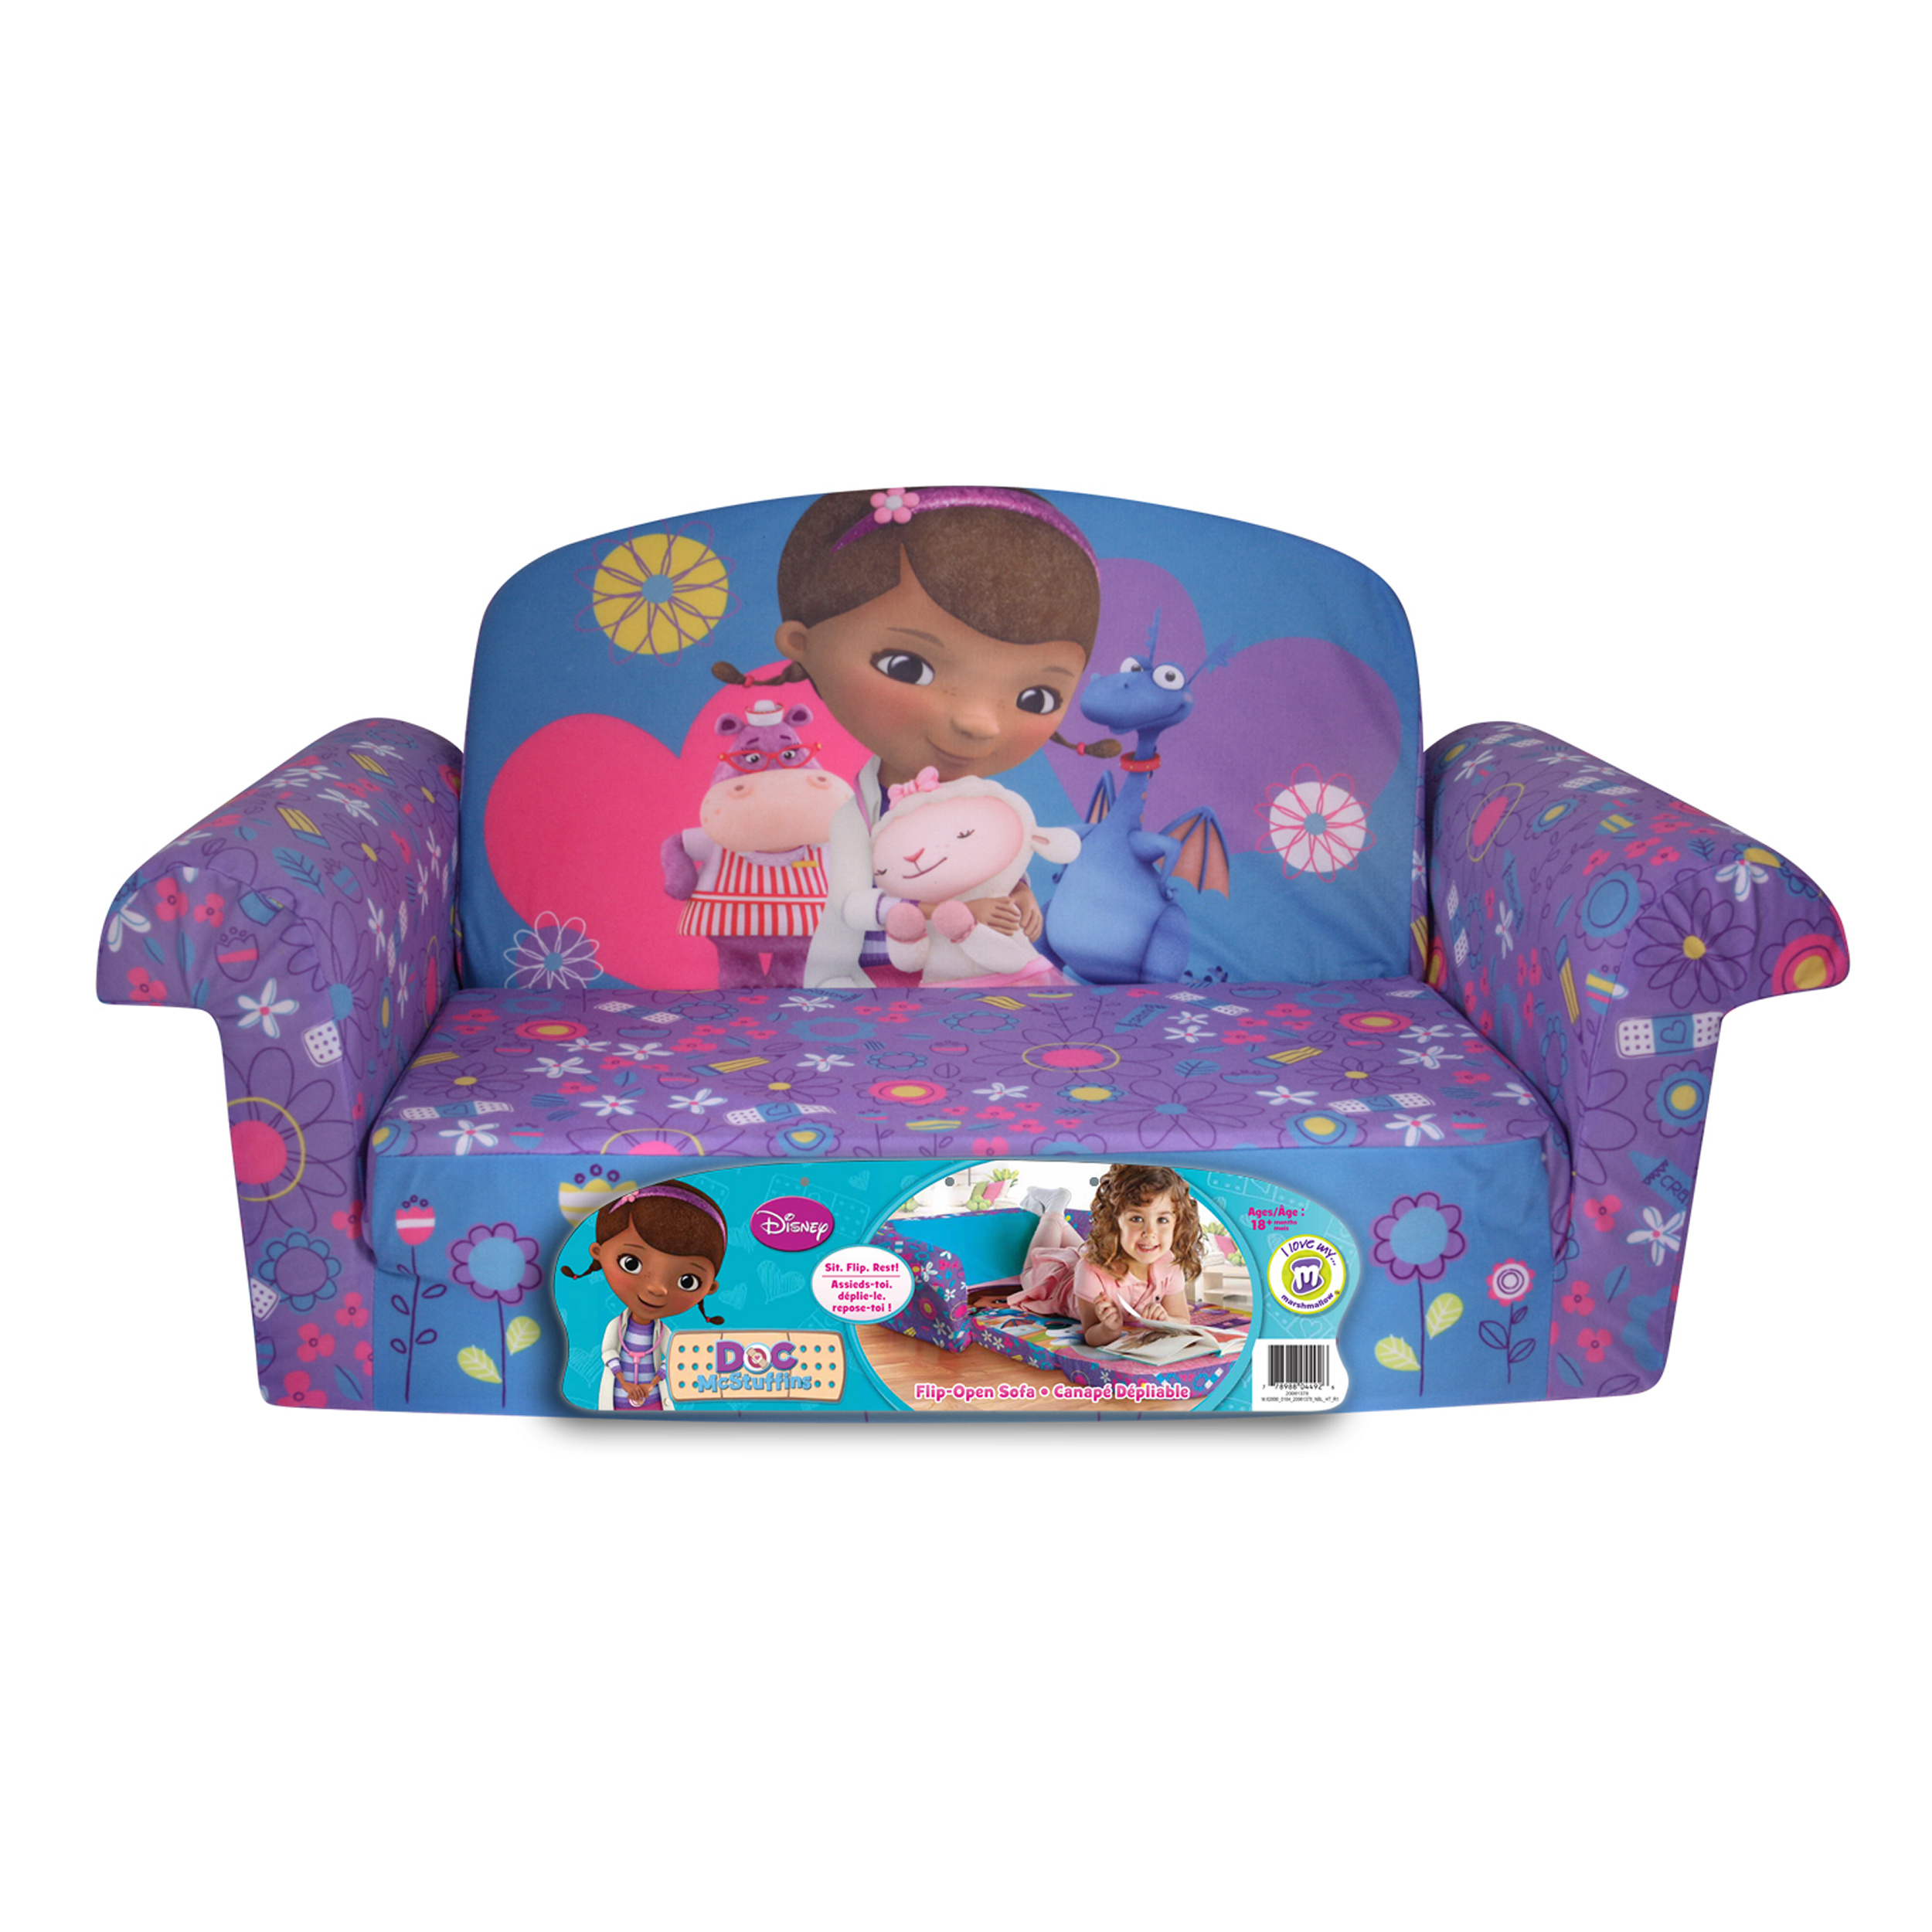 Cute Toddler Flip Open Sofa for Children Furniture Ideas: Mickey Mouse Sofa Chair | Minnie Mouse Flip Out Sofa | Toddler Flip Open Sofa